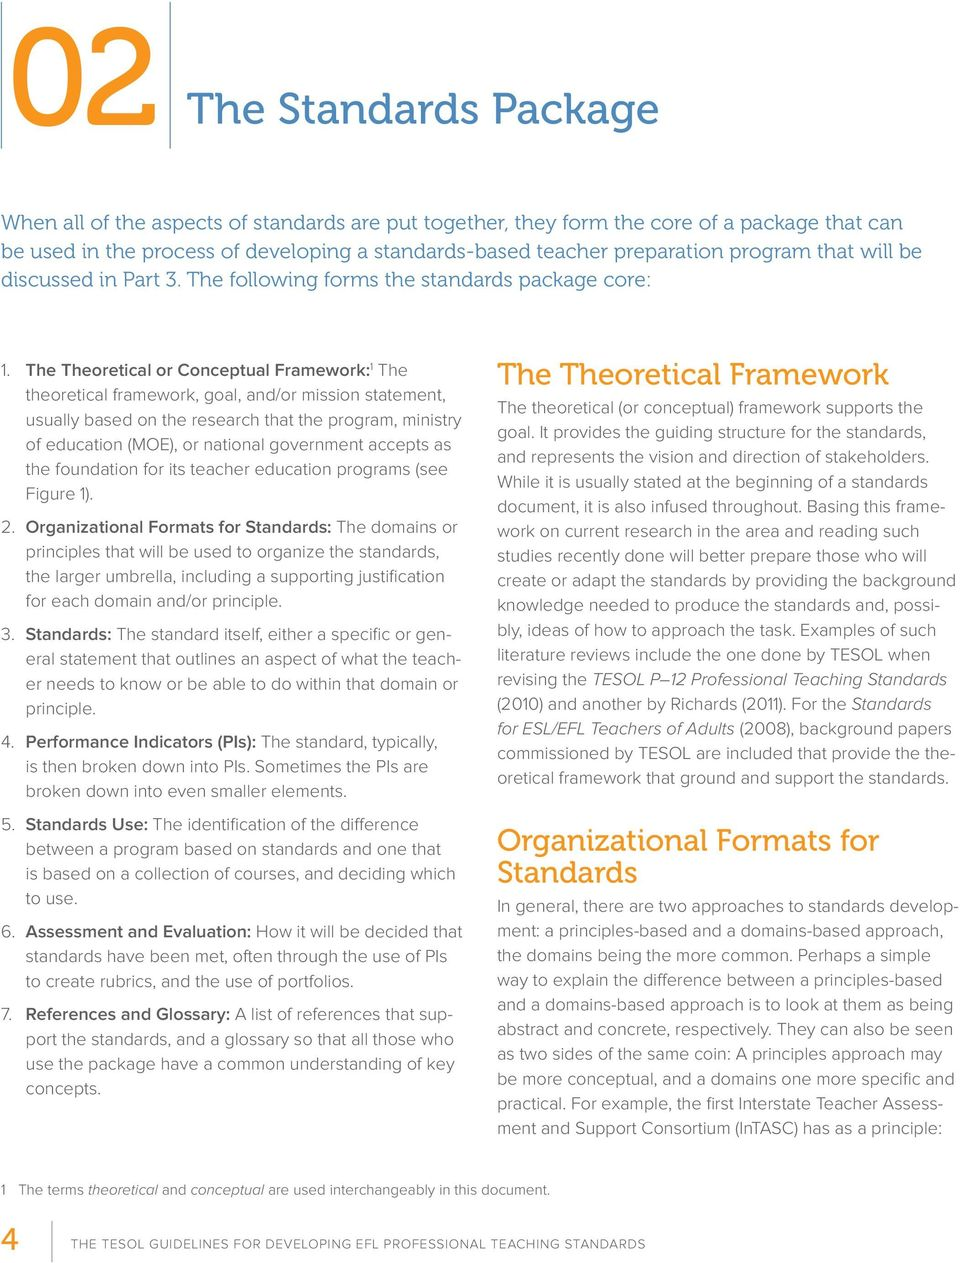 The Theoretical or Conceptual Framework: 1 The theoretical framework, goal, and/or mission statement, usually based on the research that the program, ministry of education (MOE), or national